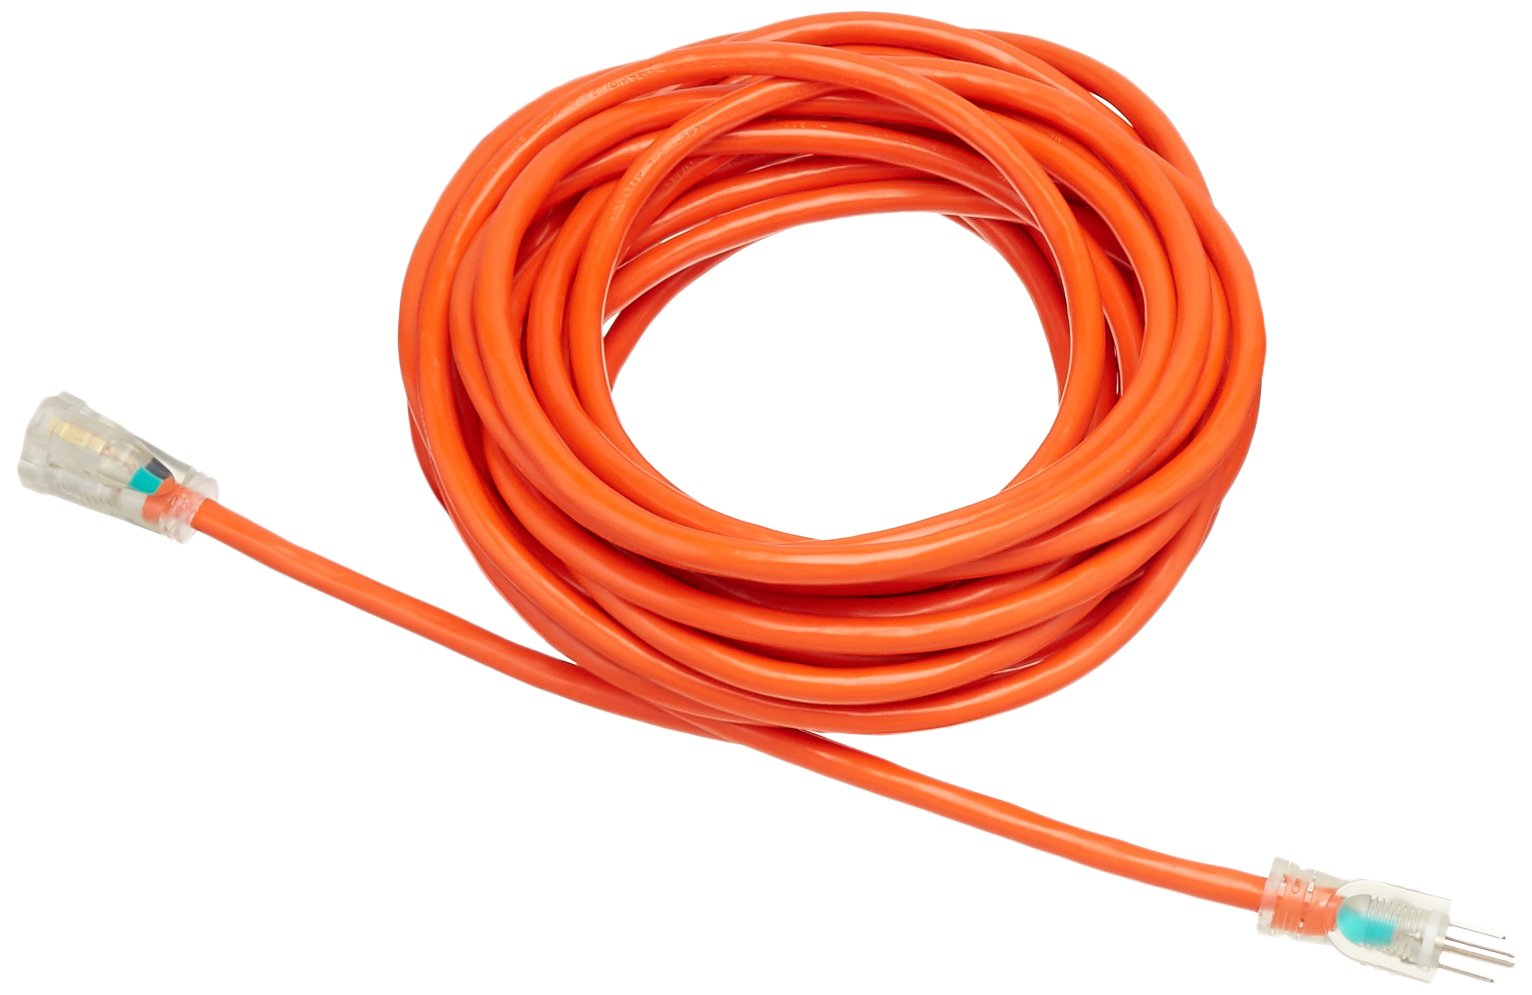 AmazonBasics 12/3 SJTW Heavy-Duty Lighted Extension Cord - 50 Feet (Orange)